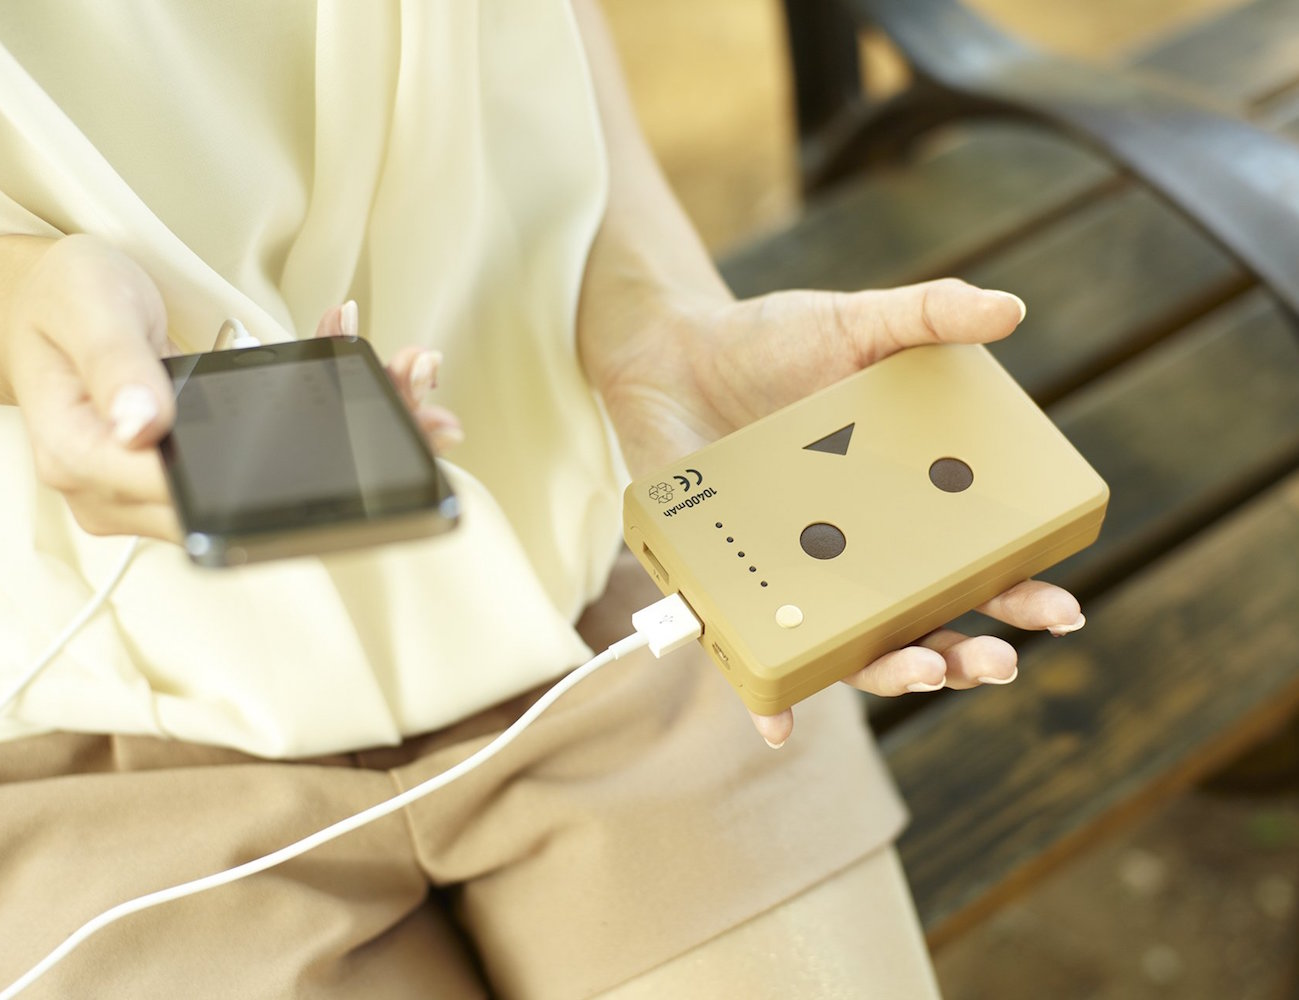 Power+Plus+DANBOARD+External+Battery+Pack+By+Cheero